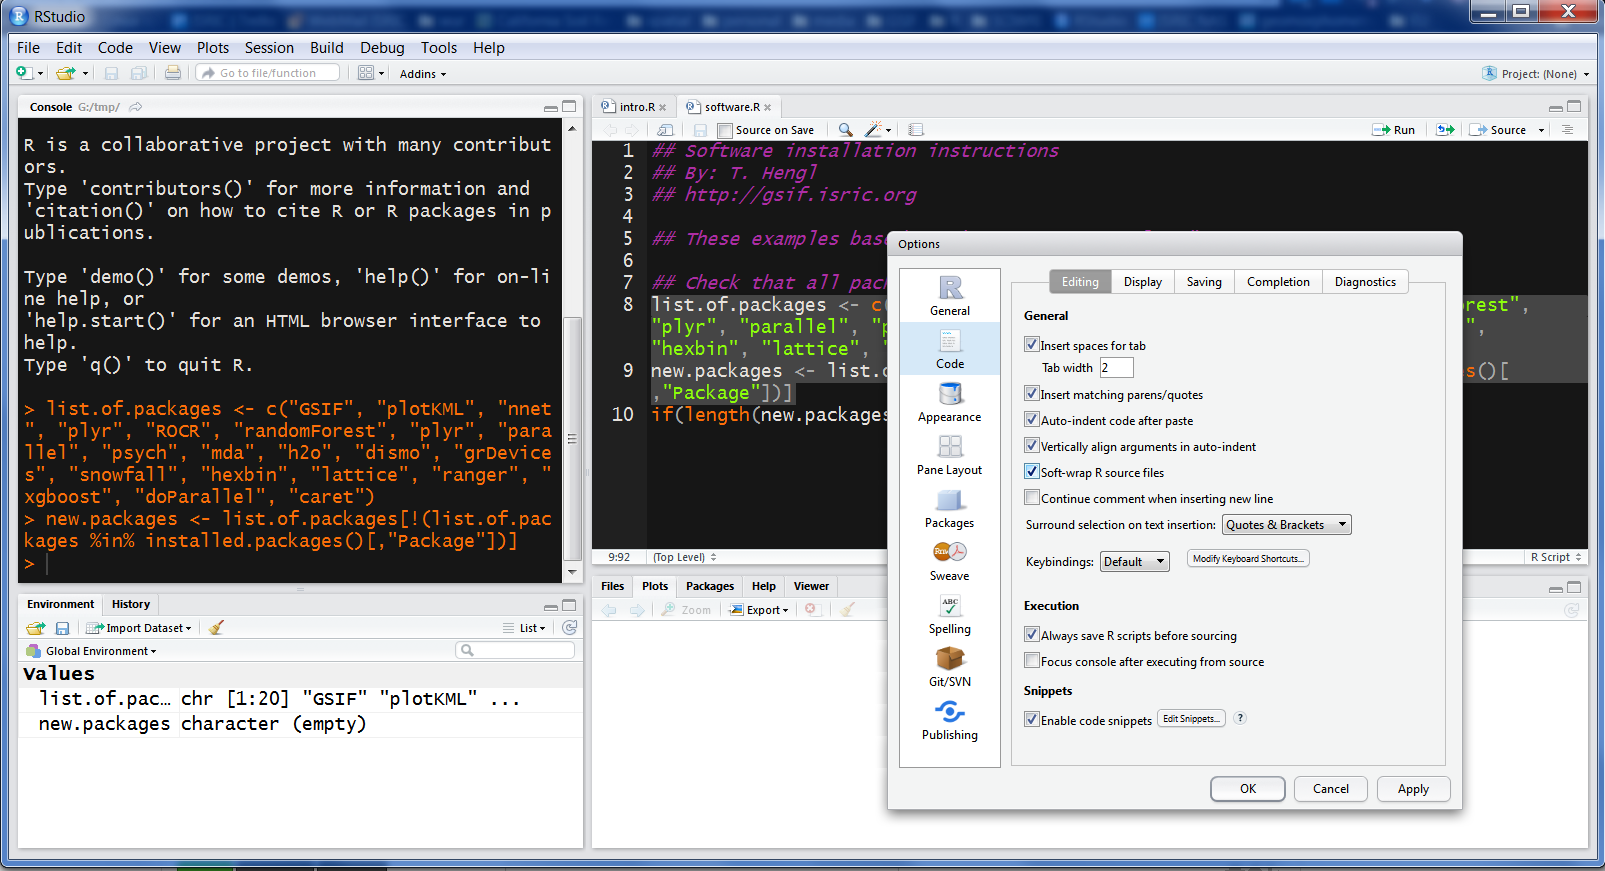 RStudio is a commonly used R editor written in C++.